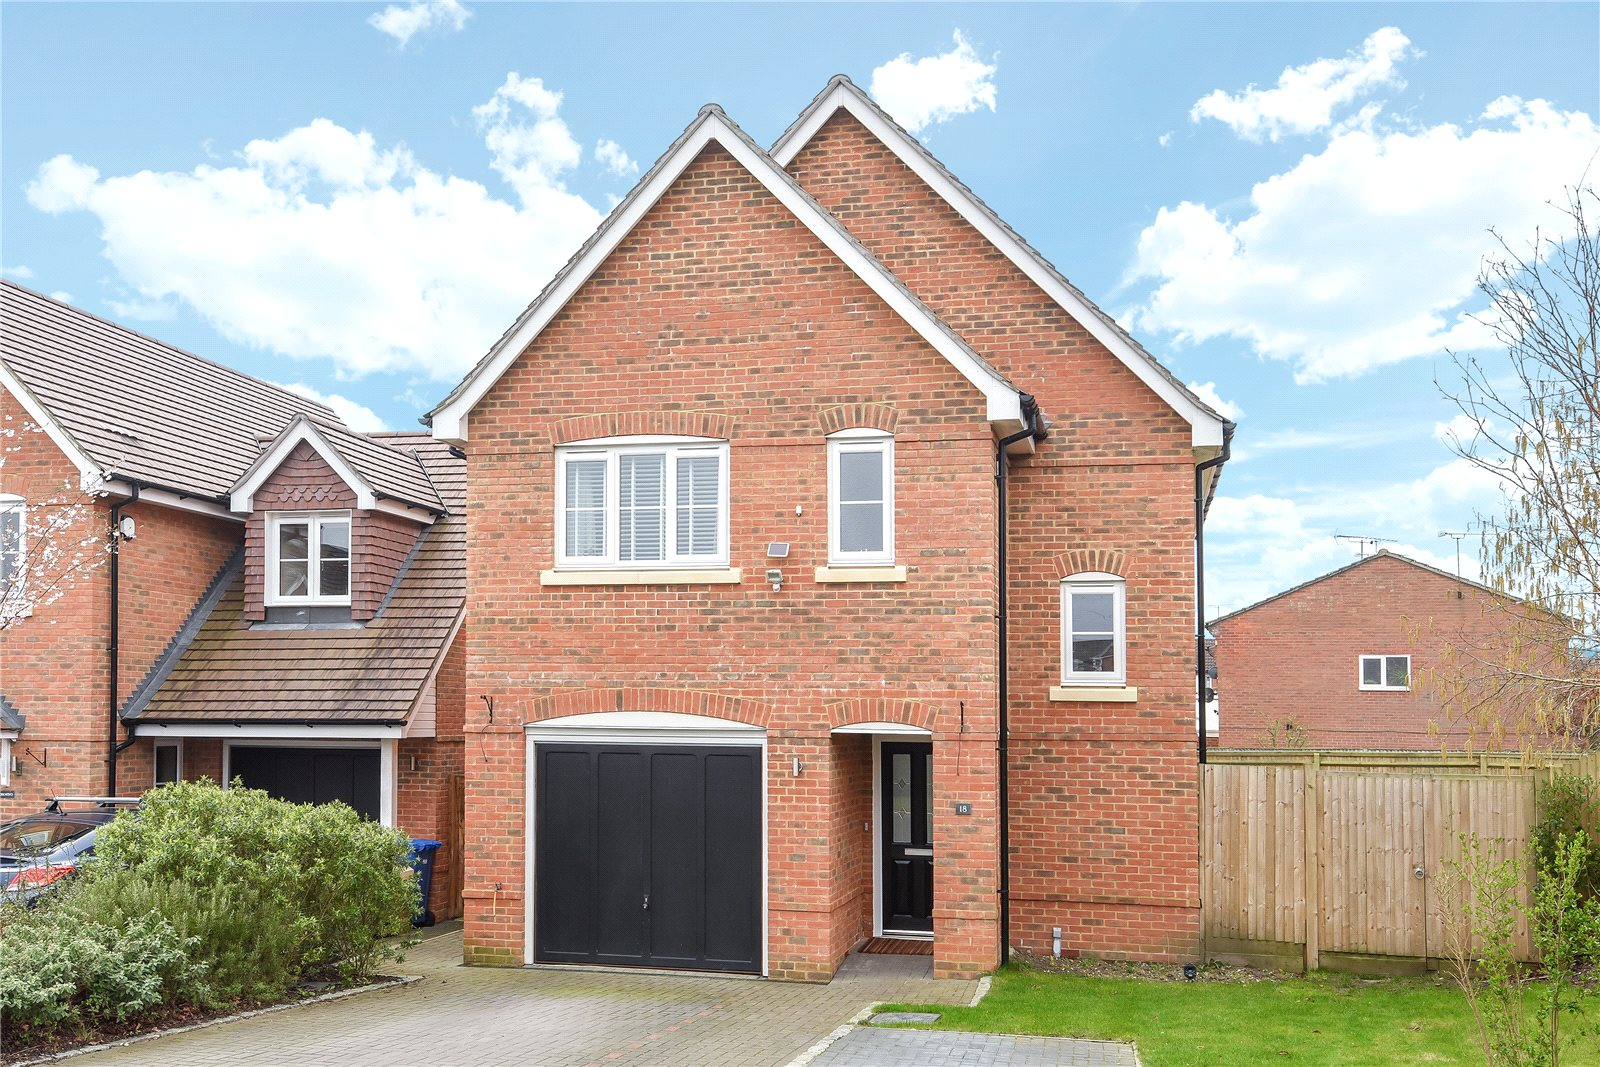 3 Bedrooms Detached House for sale in Whitmore Close, Owlsmoor, Sandhurst, Berkshire, GU47